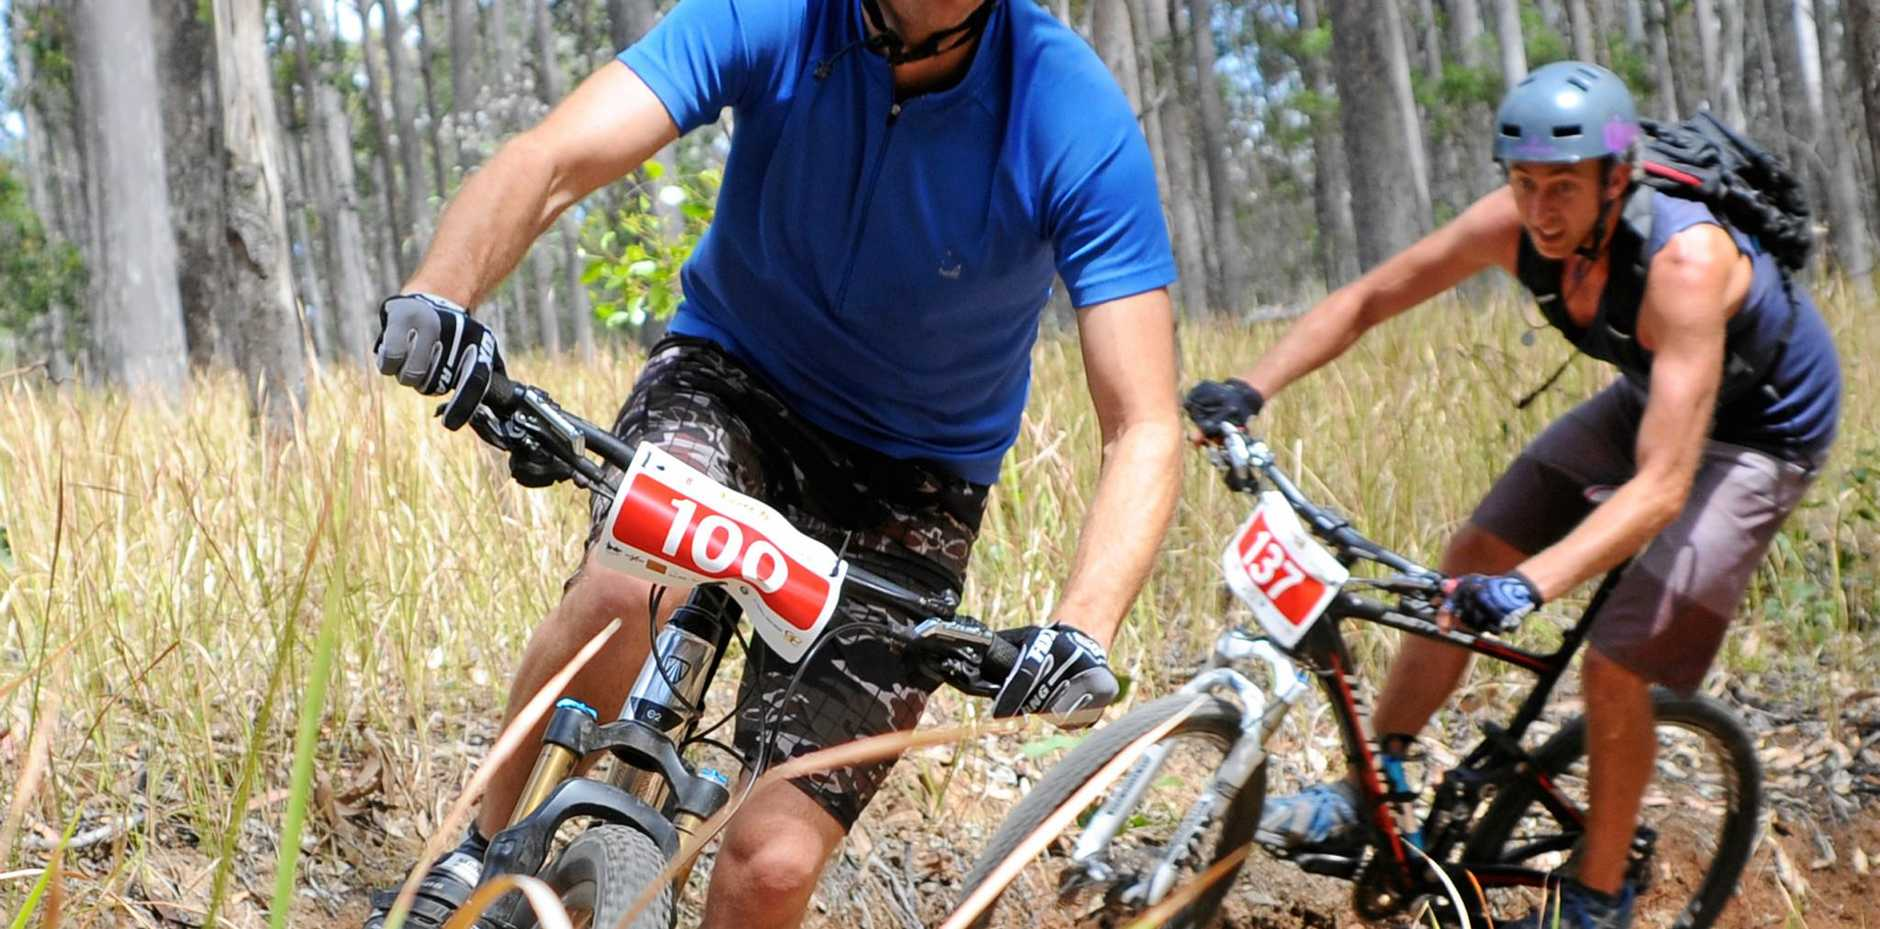 PEDAL POWER: A big weekend of mountain bike riding is planned for the Coffs Coast.